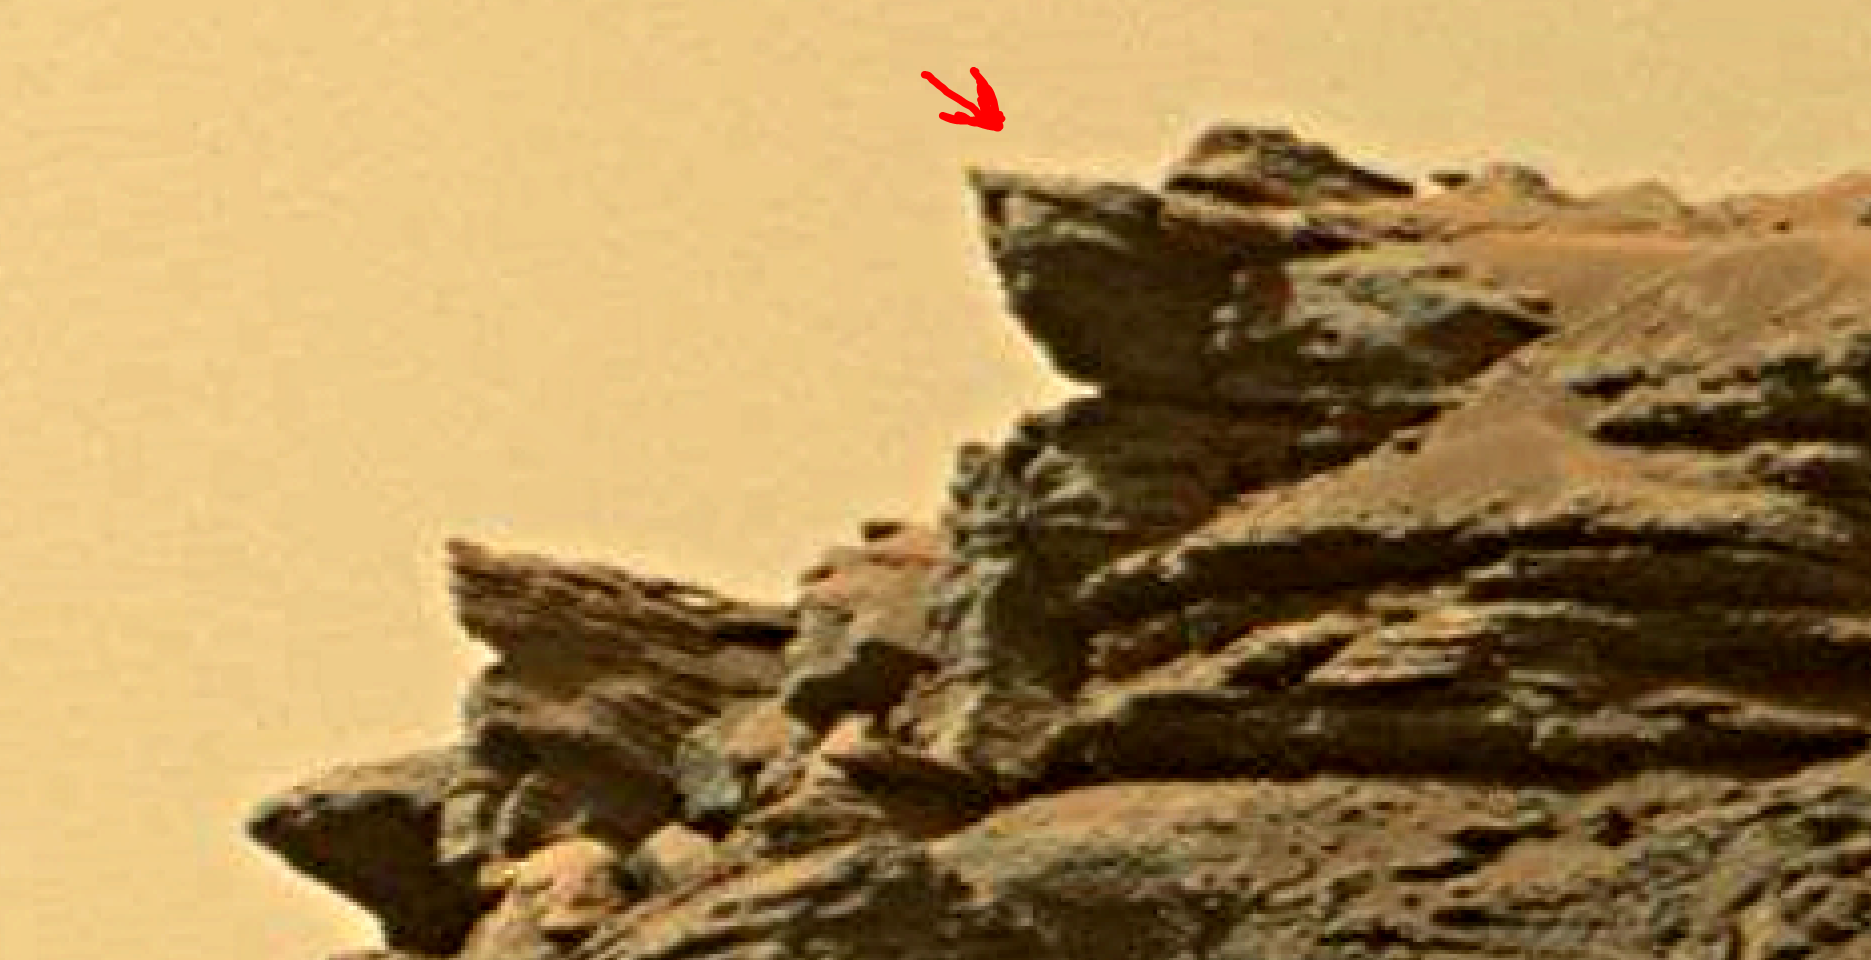 mars-sol-1454-anomaly-artifacts-1a-was-life-on-mars